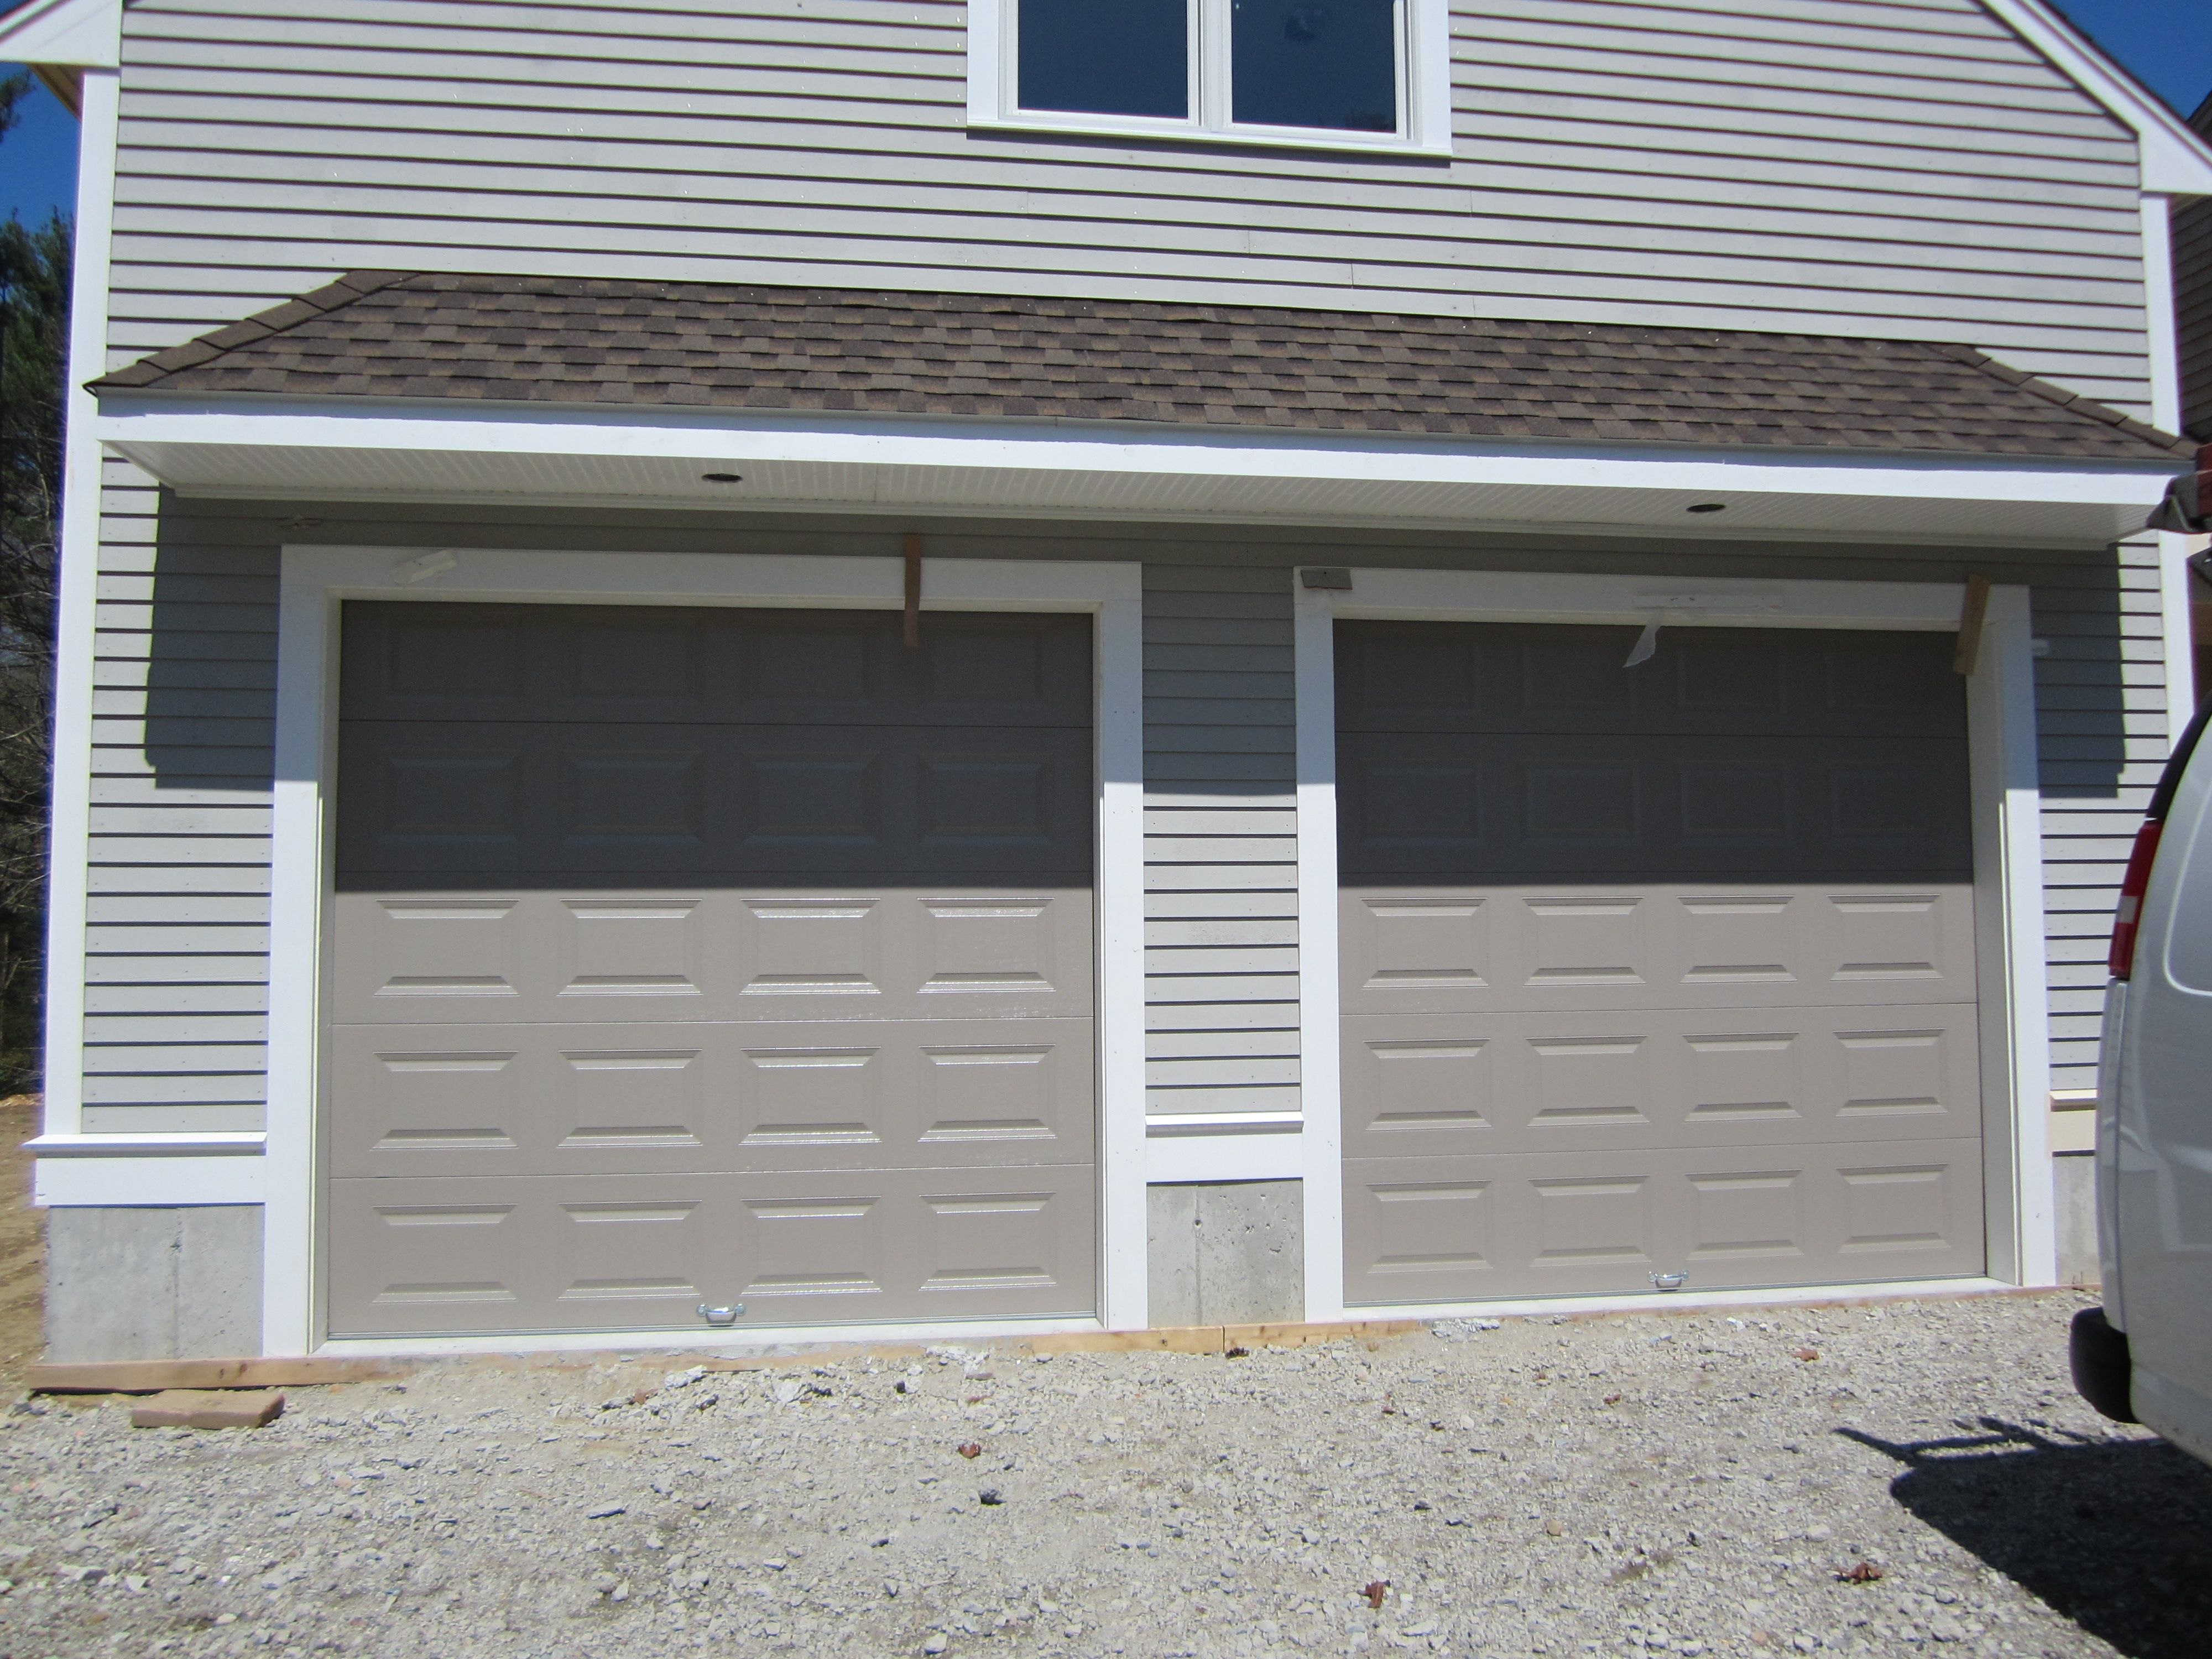 Classica northampton garage door white 9 x 8 no windows - Haas Model 680 Steel Raised Panel Doors In Sandstone Installed By Mortland Overhead Door